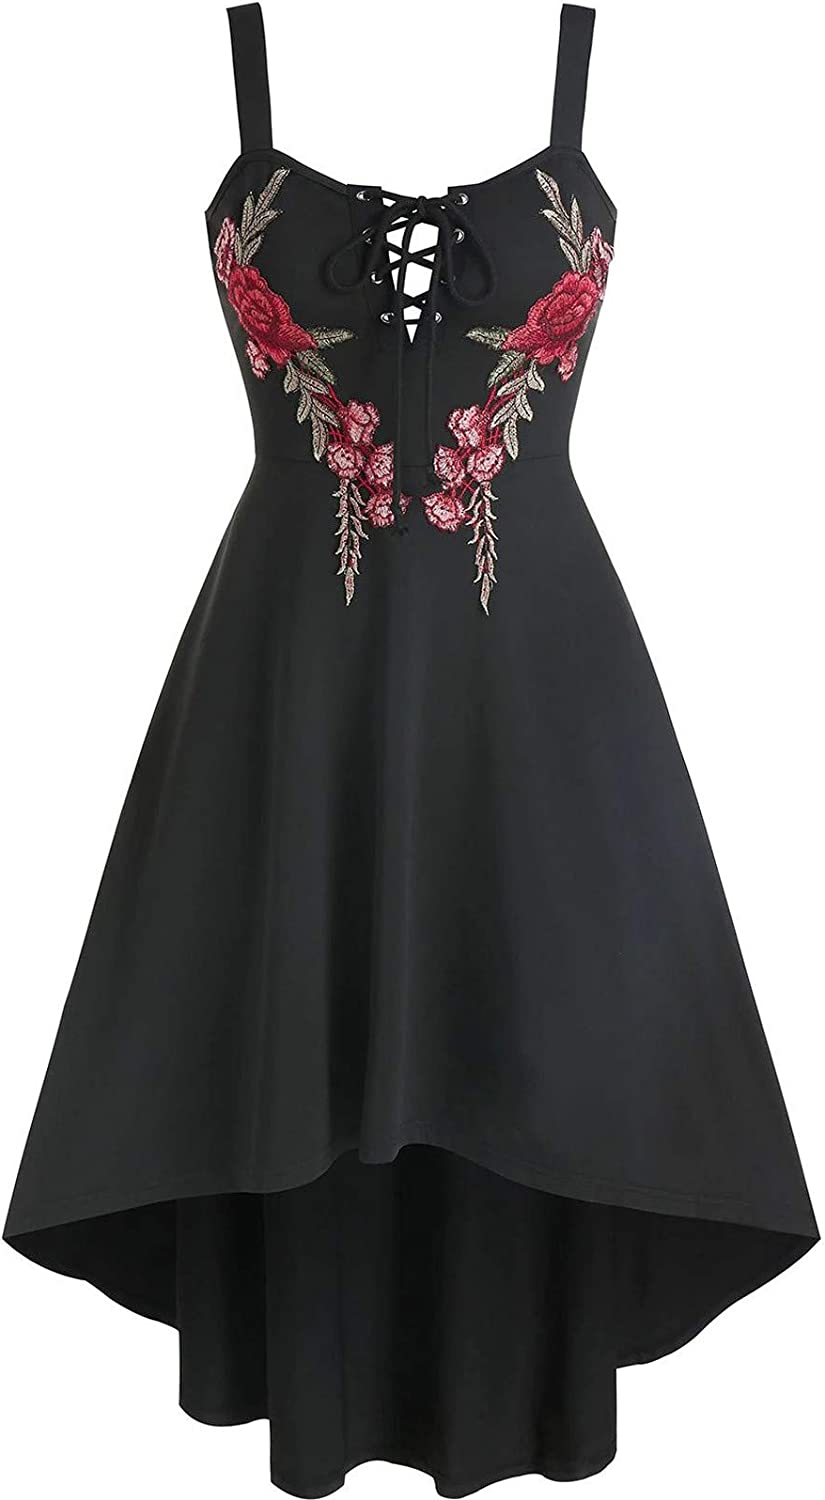 Women's Spaghetti New arrival Strap Solid Color Be super welcome Embroidery Dress Sle Elegant